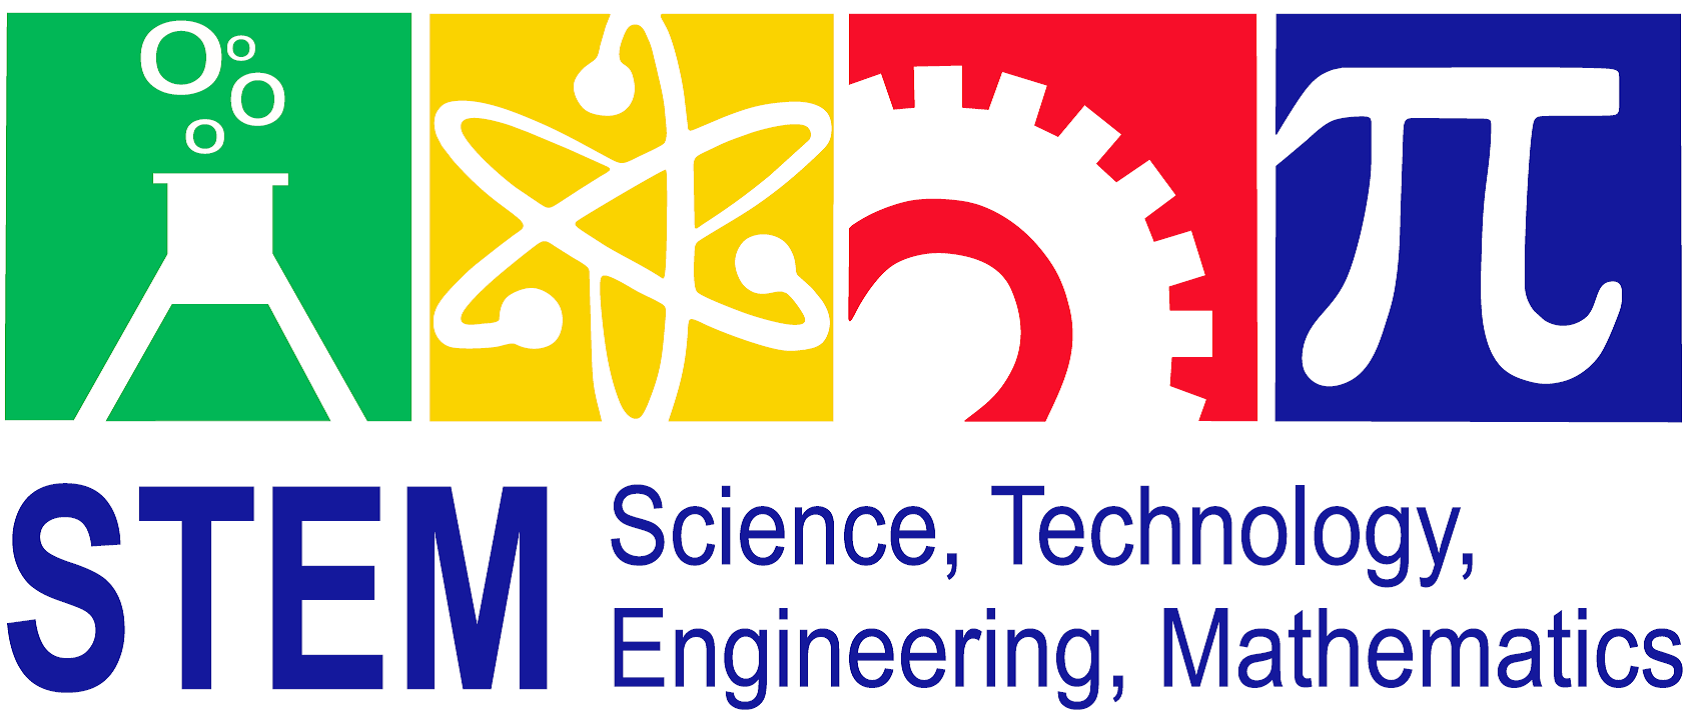 Stem Rochester Public Library District Squishy Lab Circuits Classroom Guidepdf Its Electric The Us Department Of Education Stresses Importance Fields For Helping Youth Develop Critical Thinking And Deductive Reasoning Skills